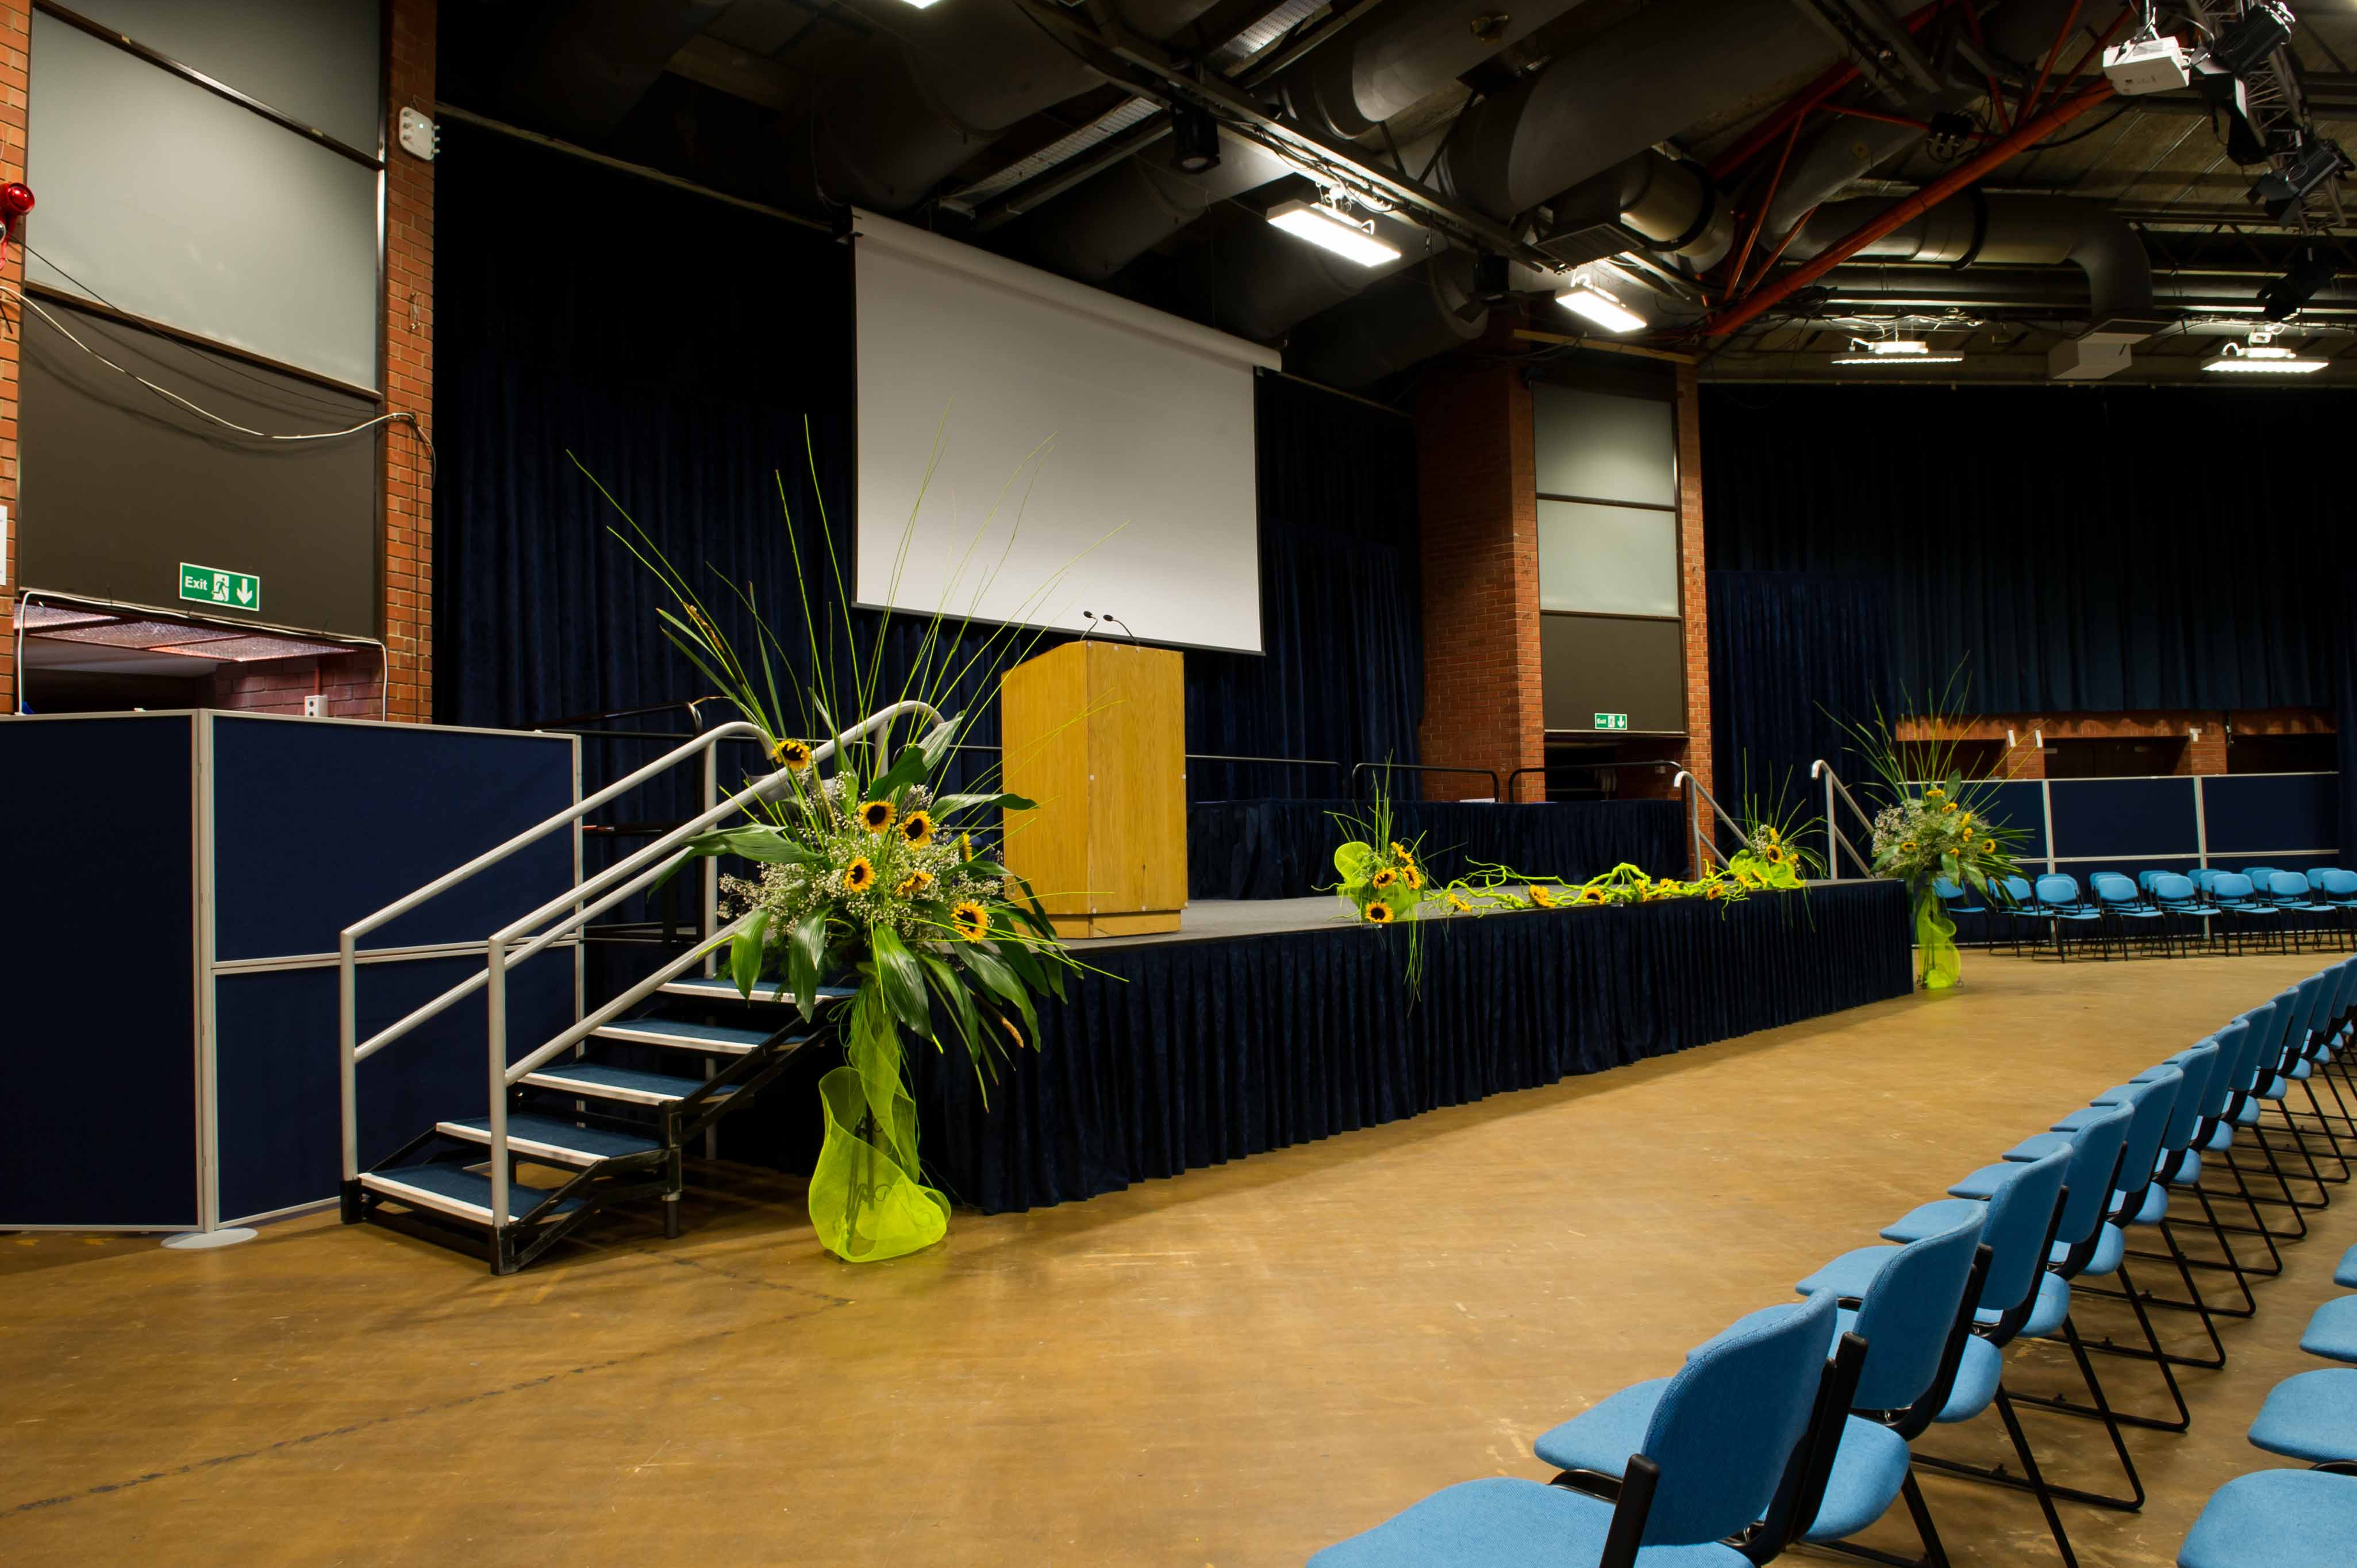 Sheffield Conferences - Venues with Catering in Sheffield